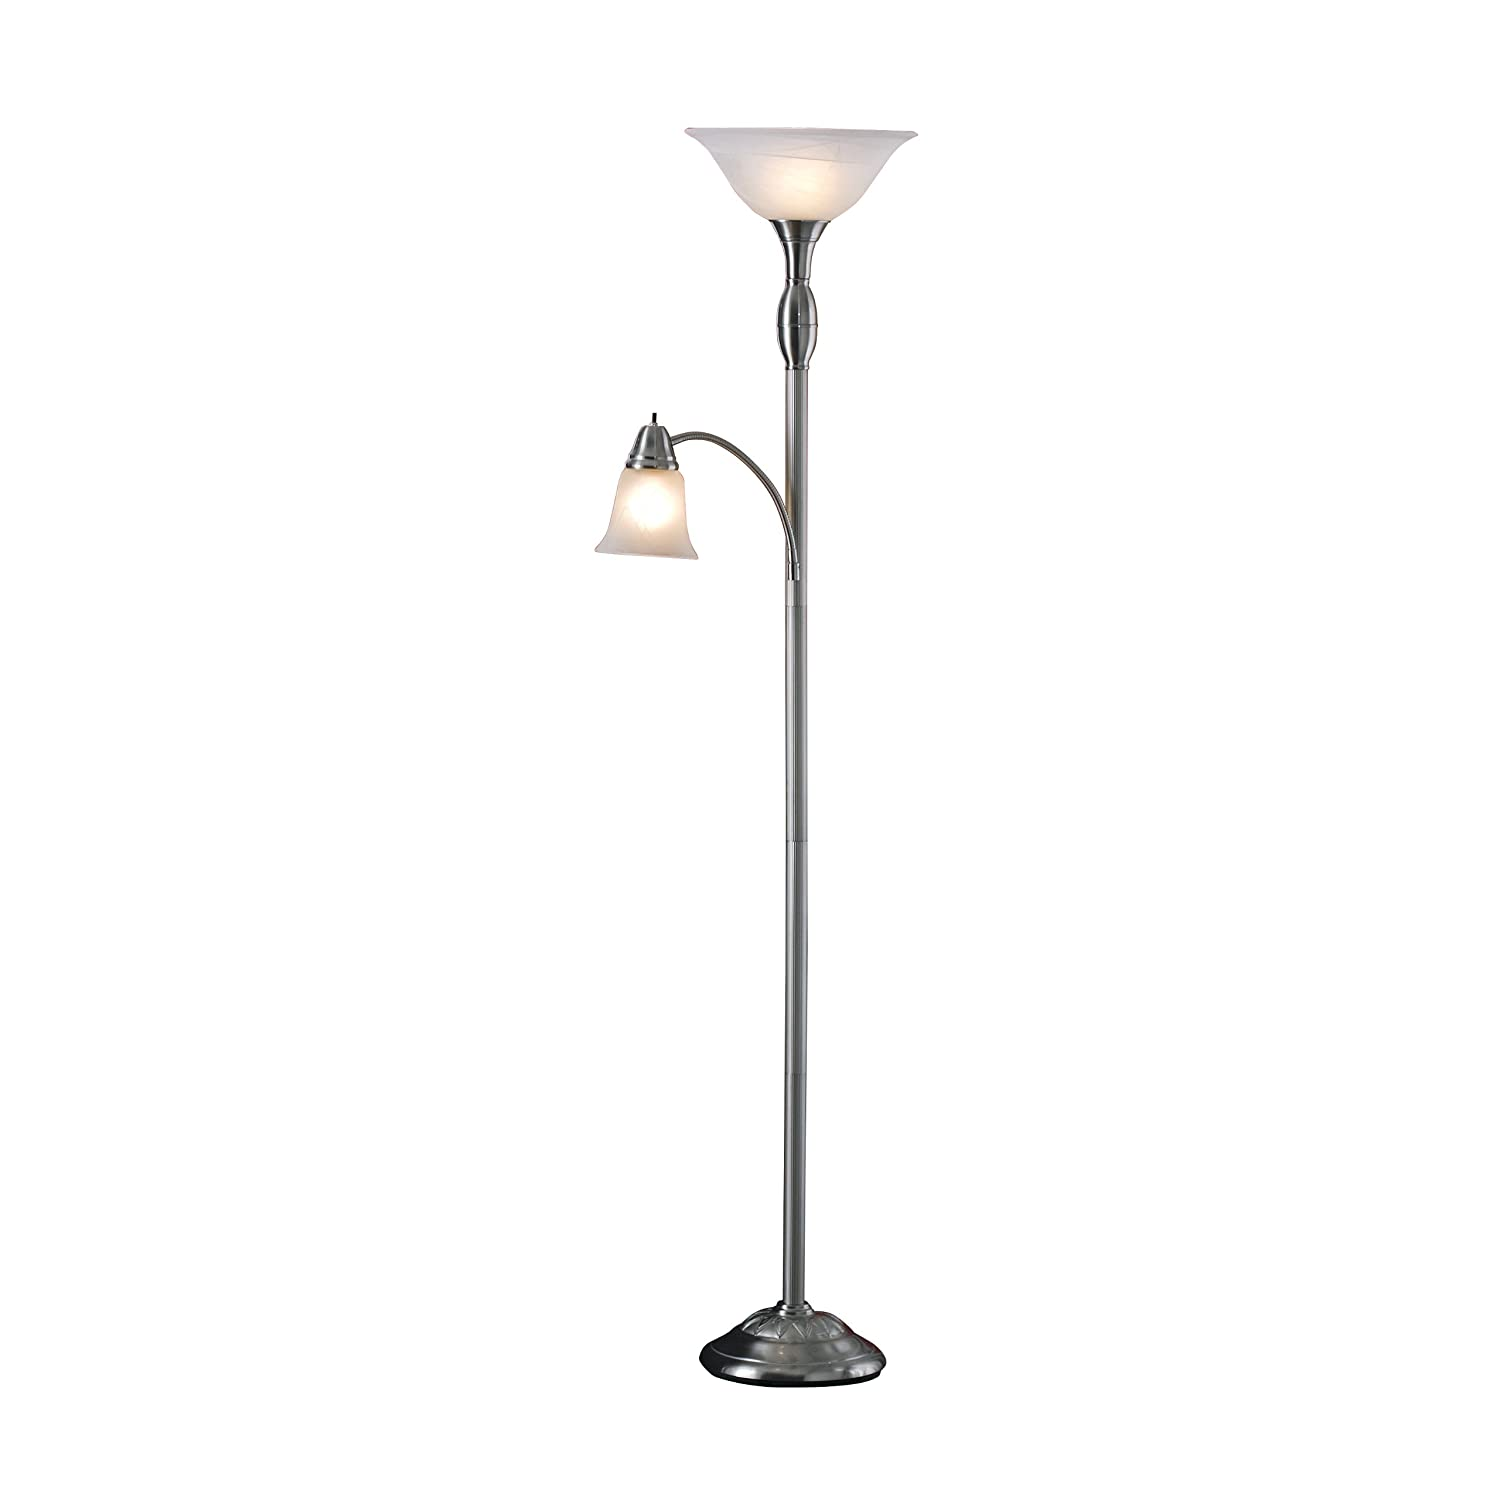 Amazon.com: Torch - Floor Lamps / Lamps & Shades: Tools & Home